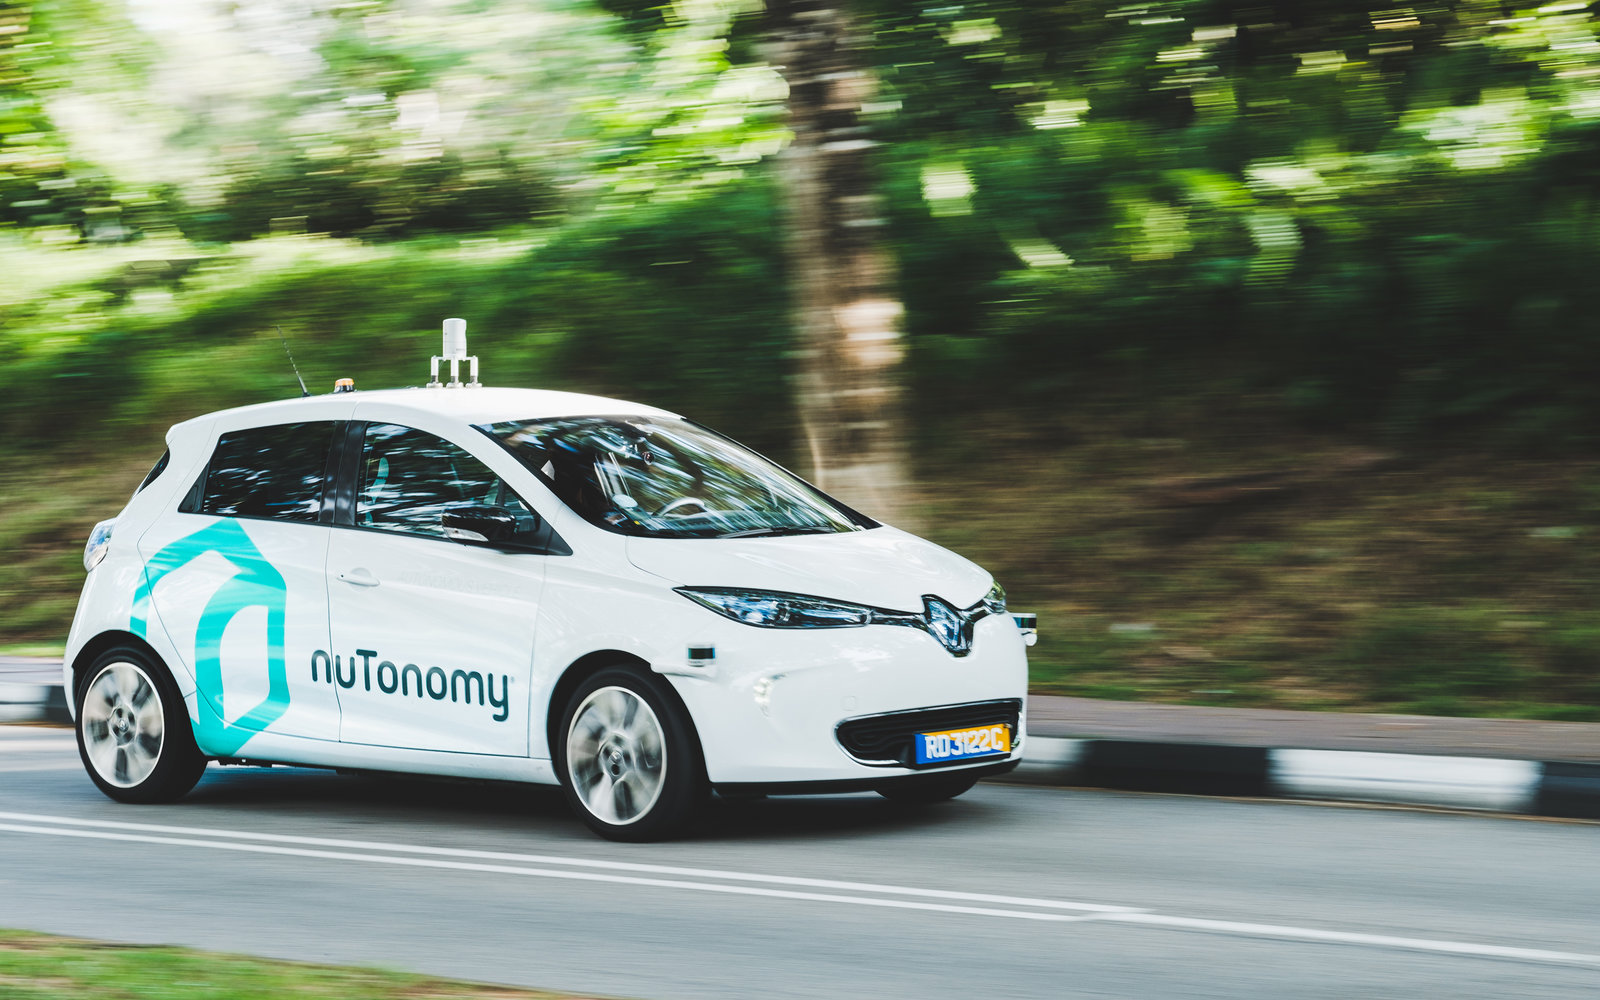 World's 1st self-driving taxis debut in Singapore